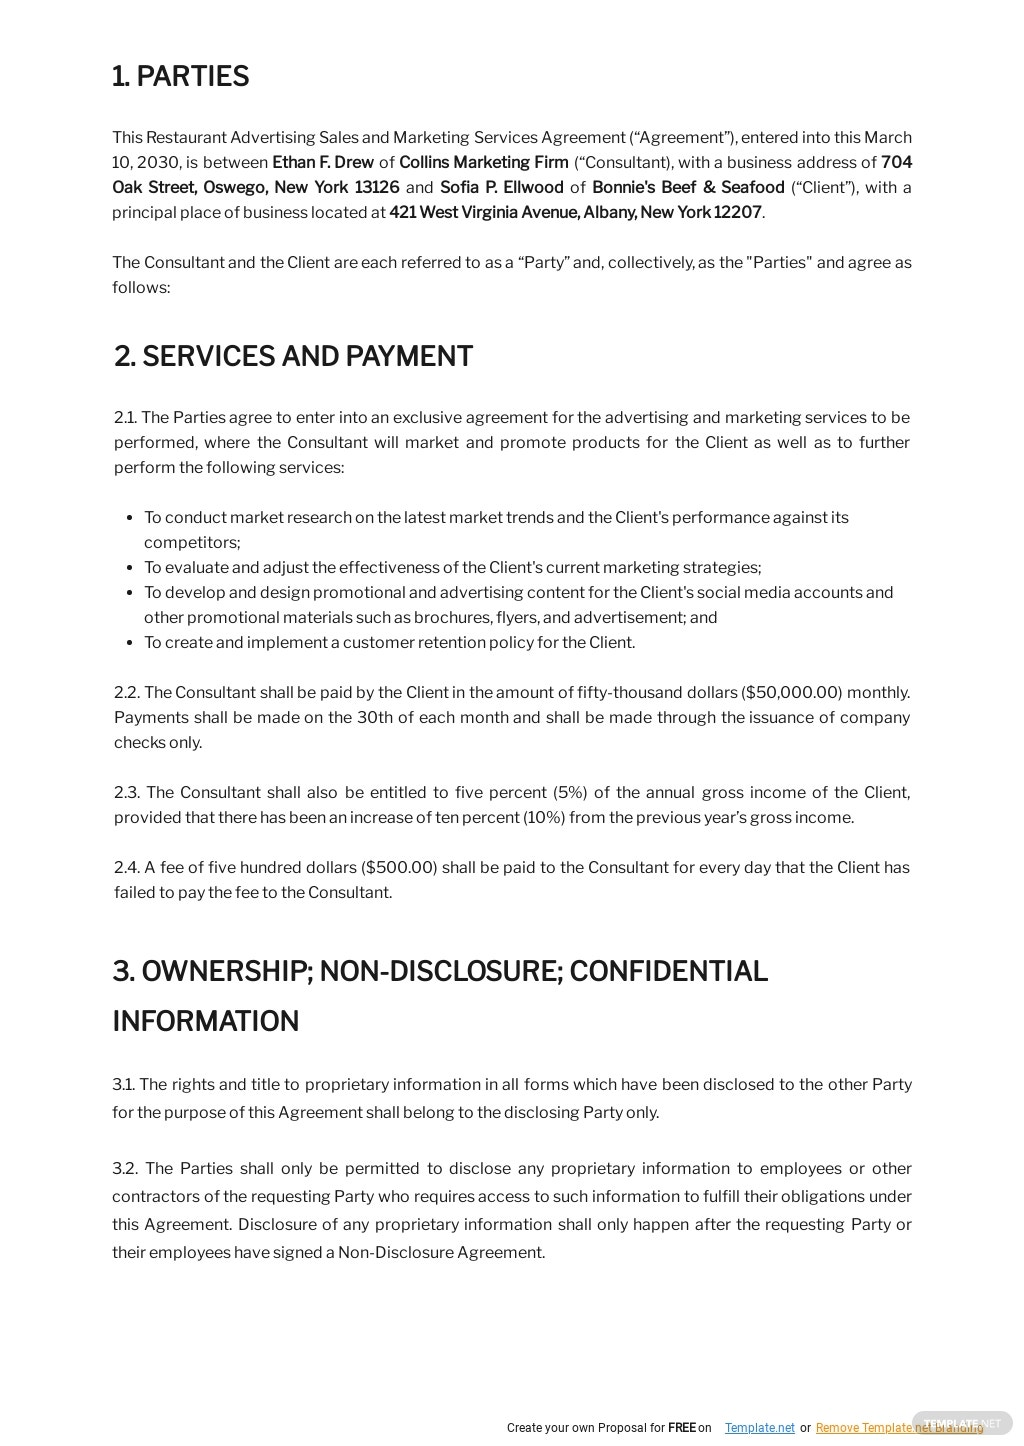 Restaurant Advertising Sales and Marketing Services Agreement Template 1.jpe